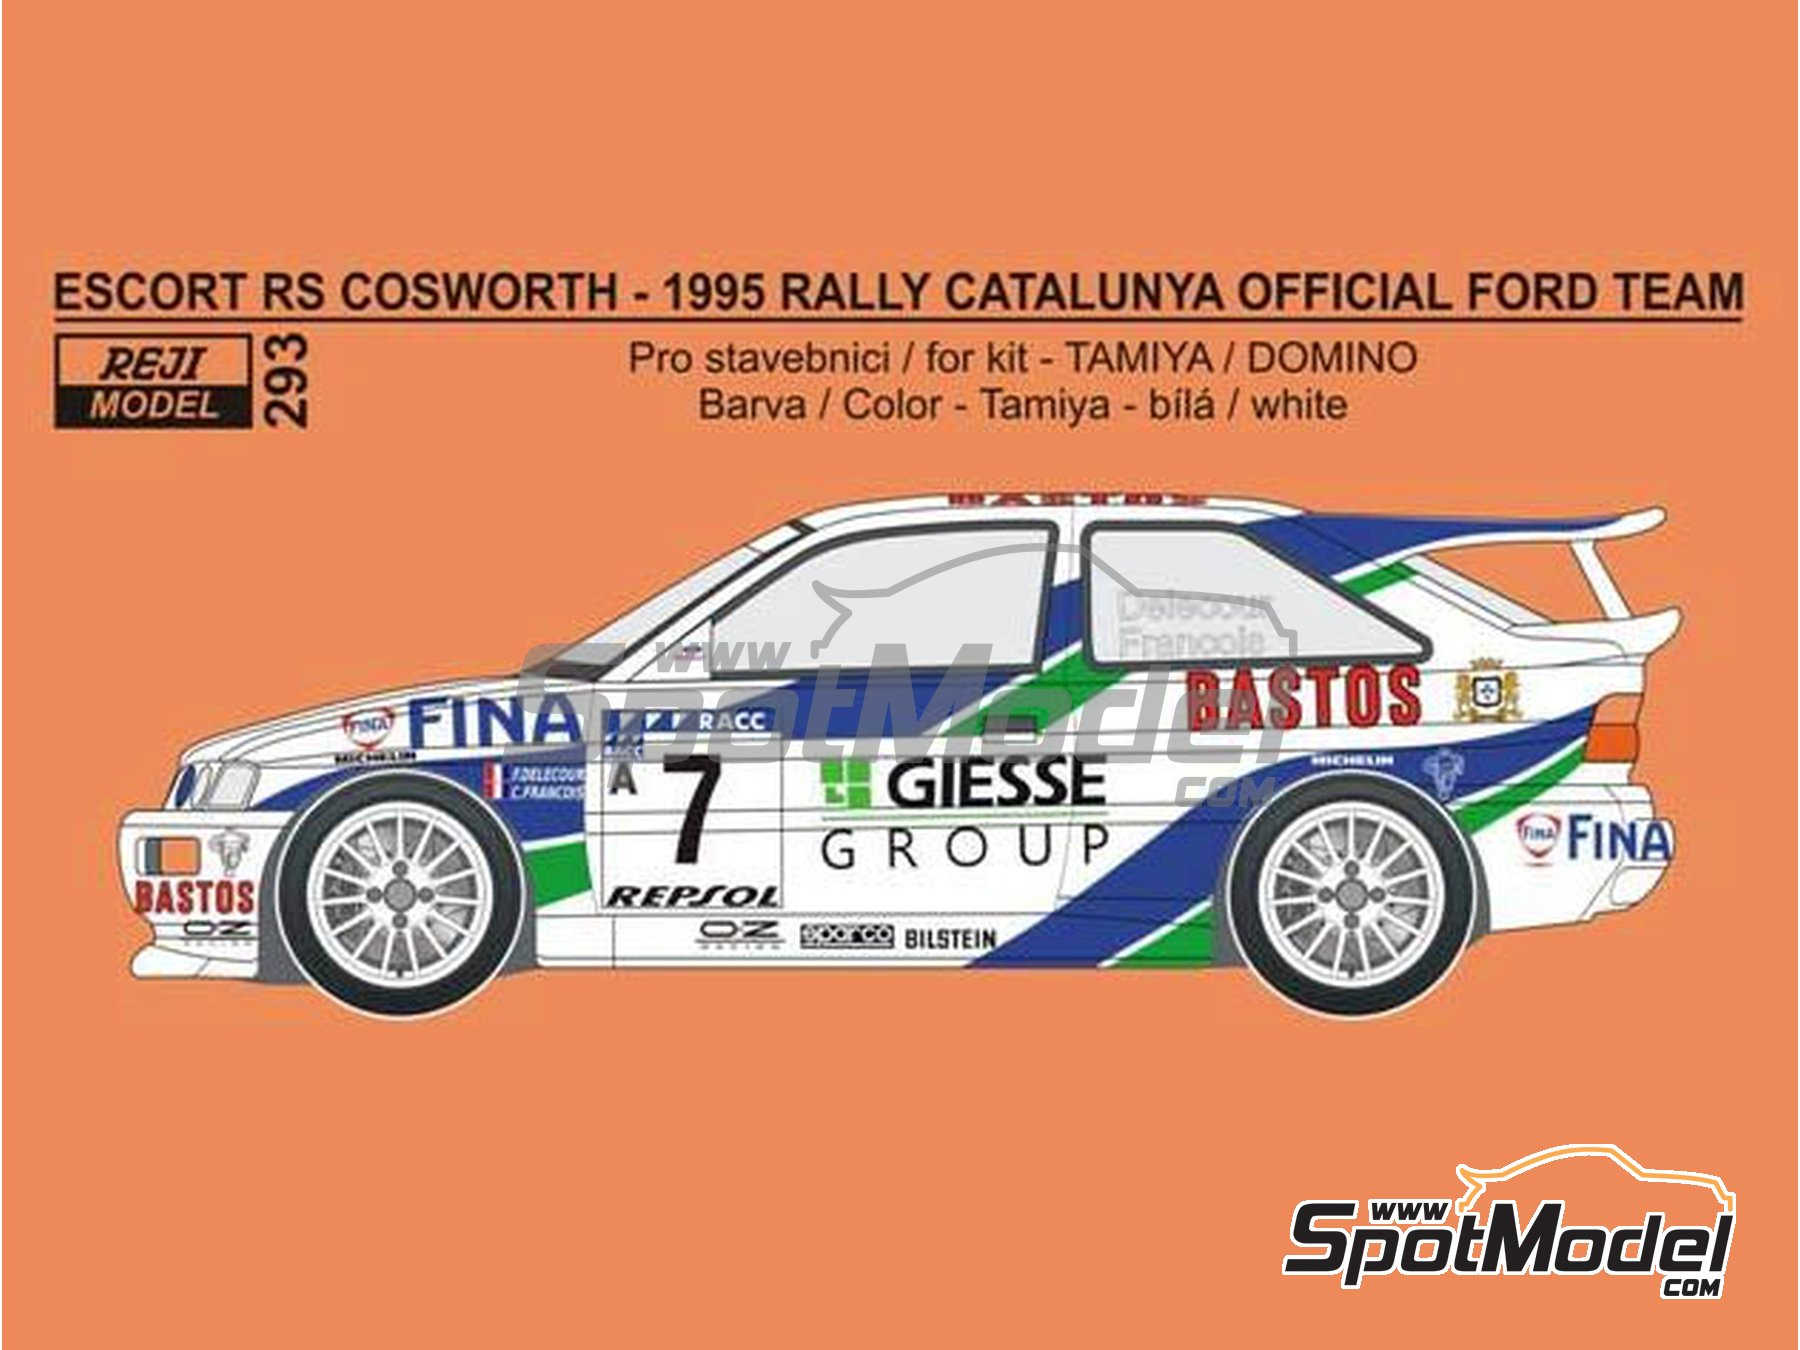 Image 1: Ford Escort RS Cosworth Official Ford Team - Catalunya Costa Dorada RACC Rally 1995 | Marking / livery in 1/24 scale manufactured by Reji Model (ref. REJI-293)